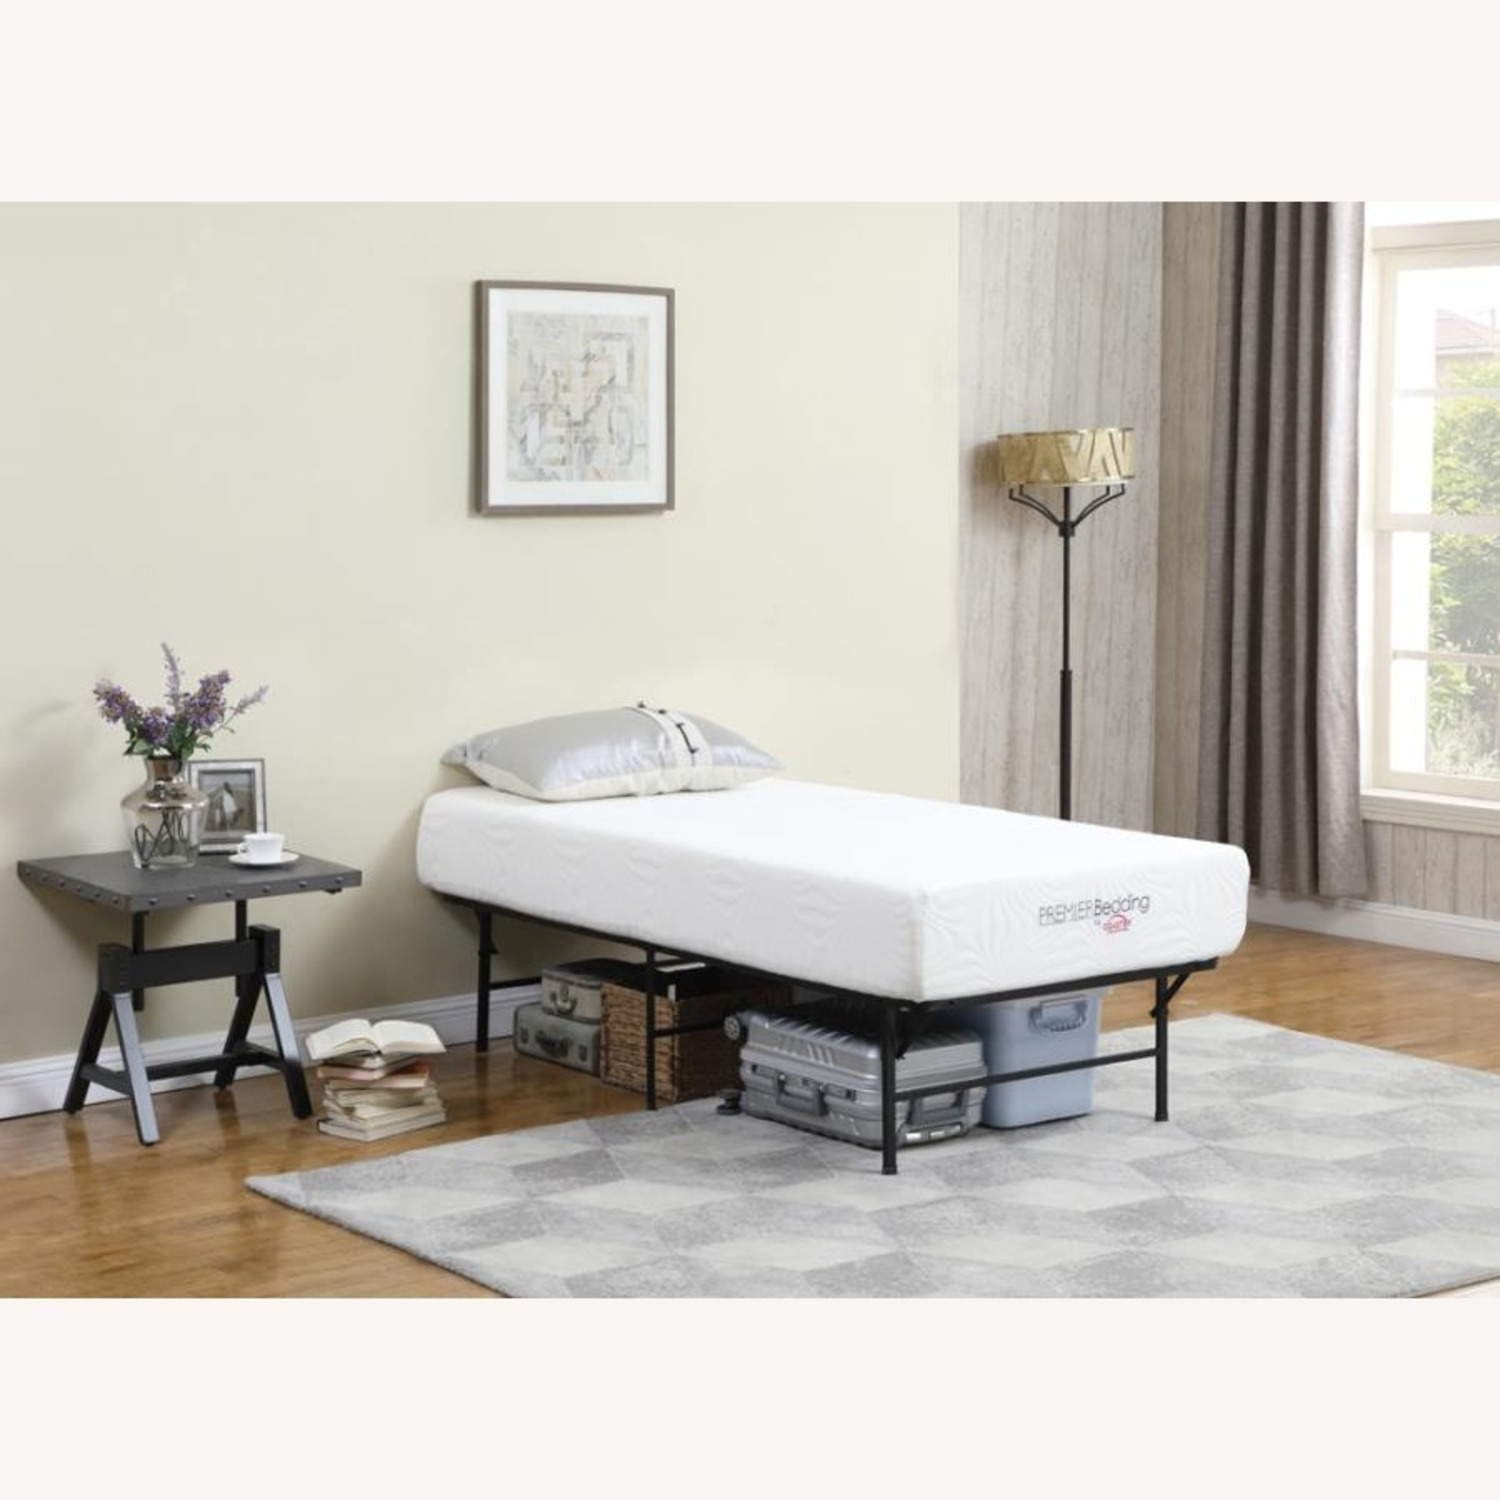 Twin XL Platform Bed In Black Powder Coated Finish - image-6